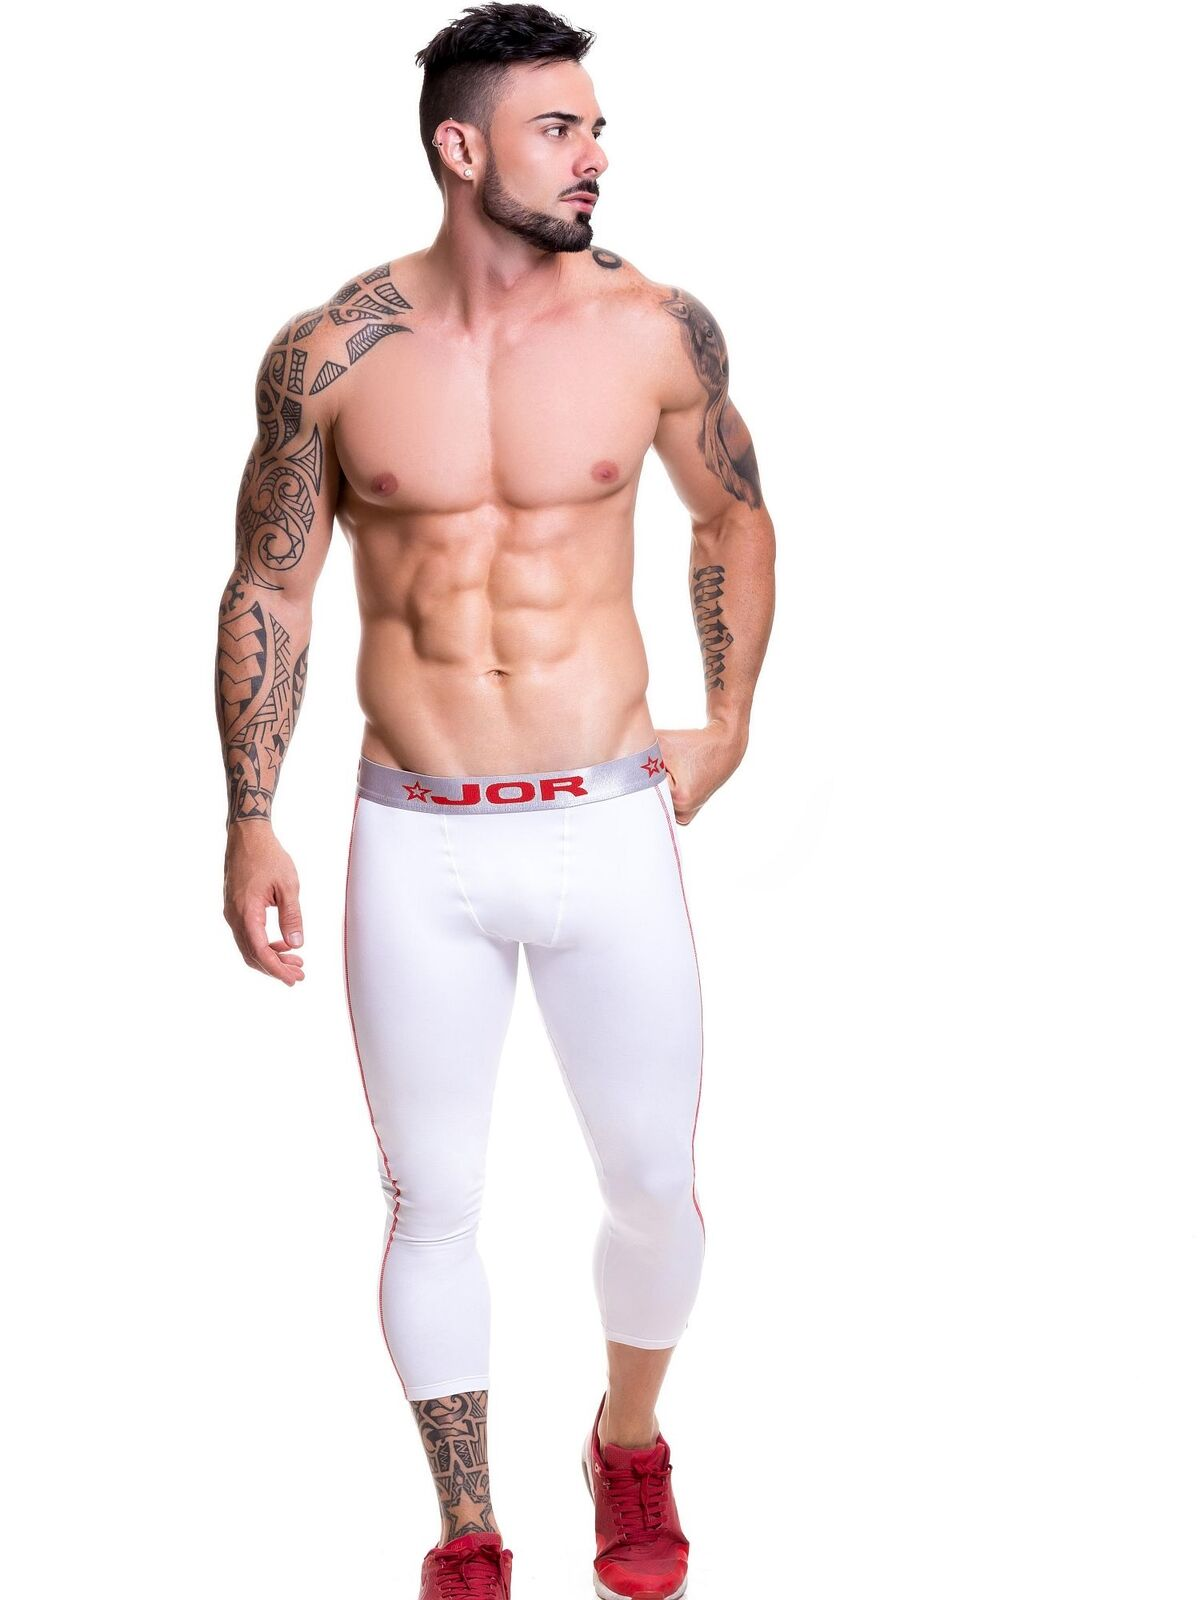 JOR Kompression Herren Gym Tight Tight Tight Leggings Hose Fitness Sporthose Base Layer Lauf 079470